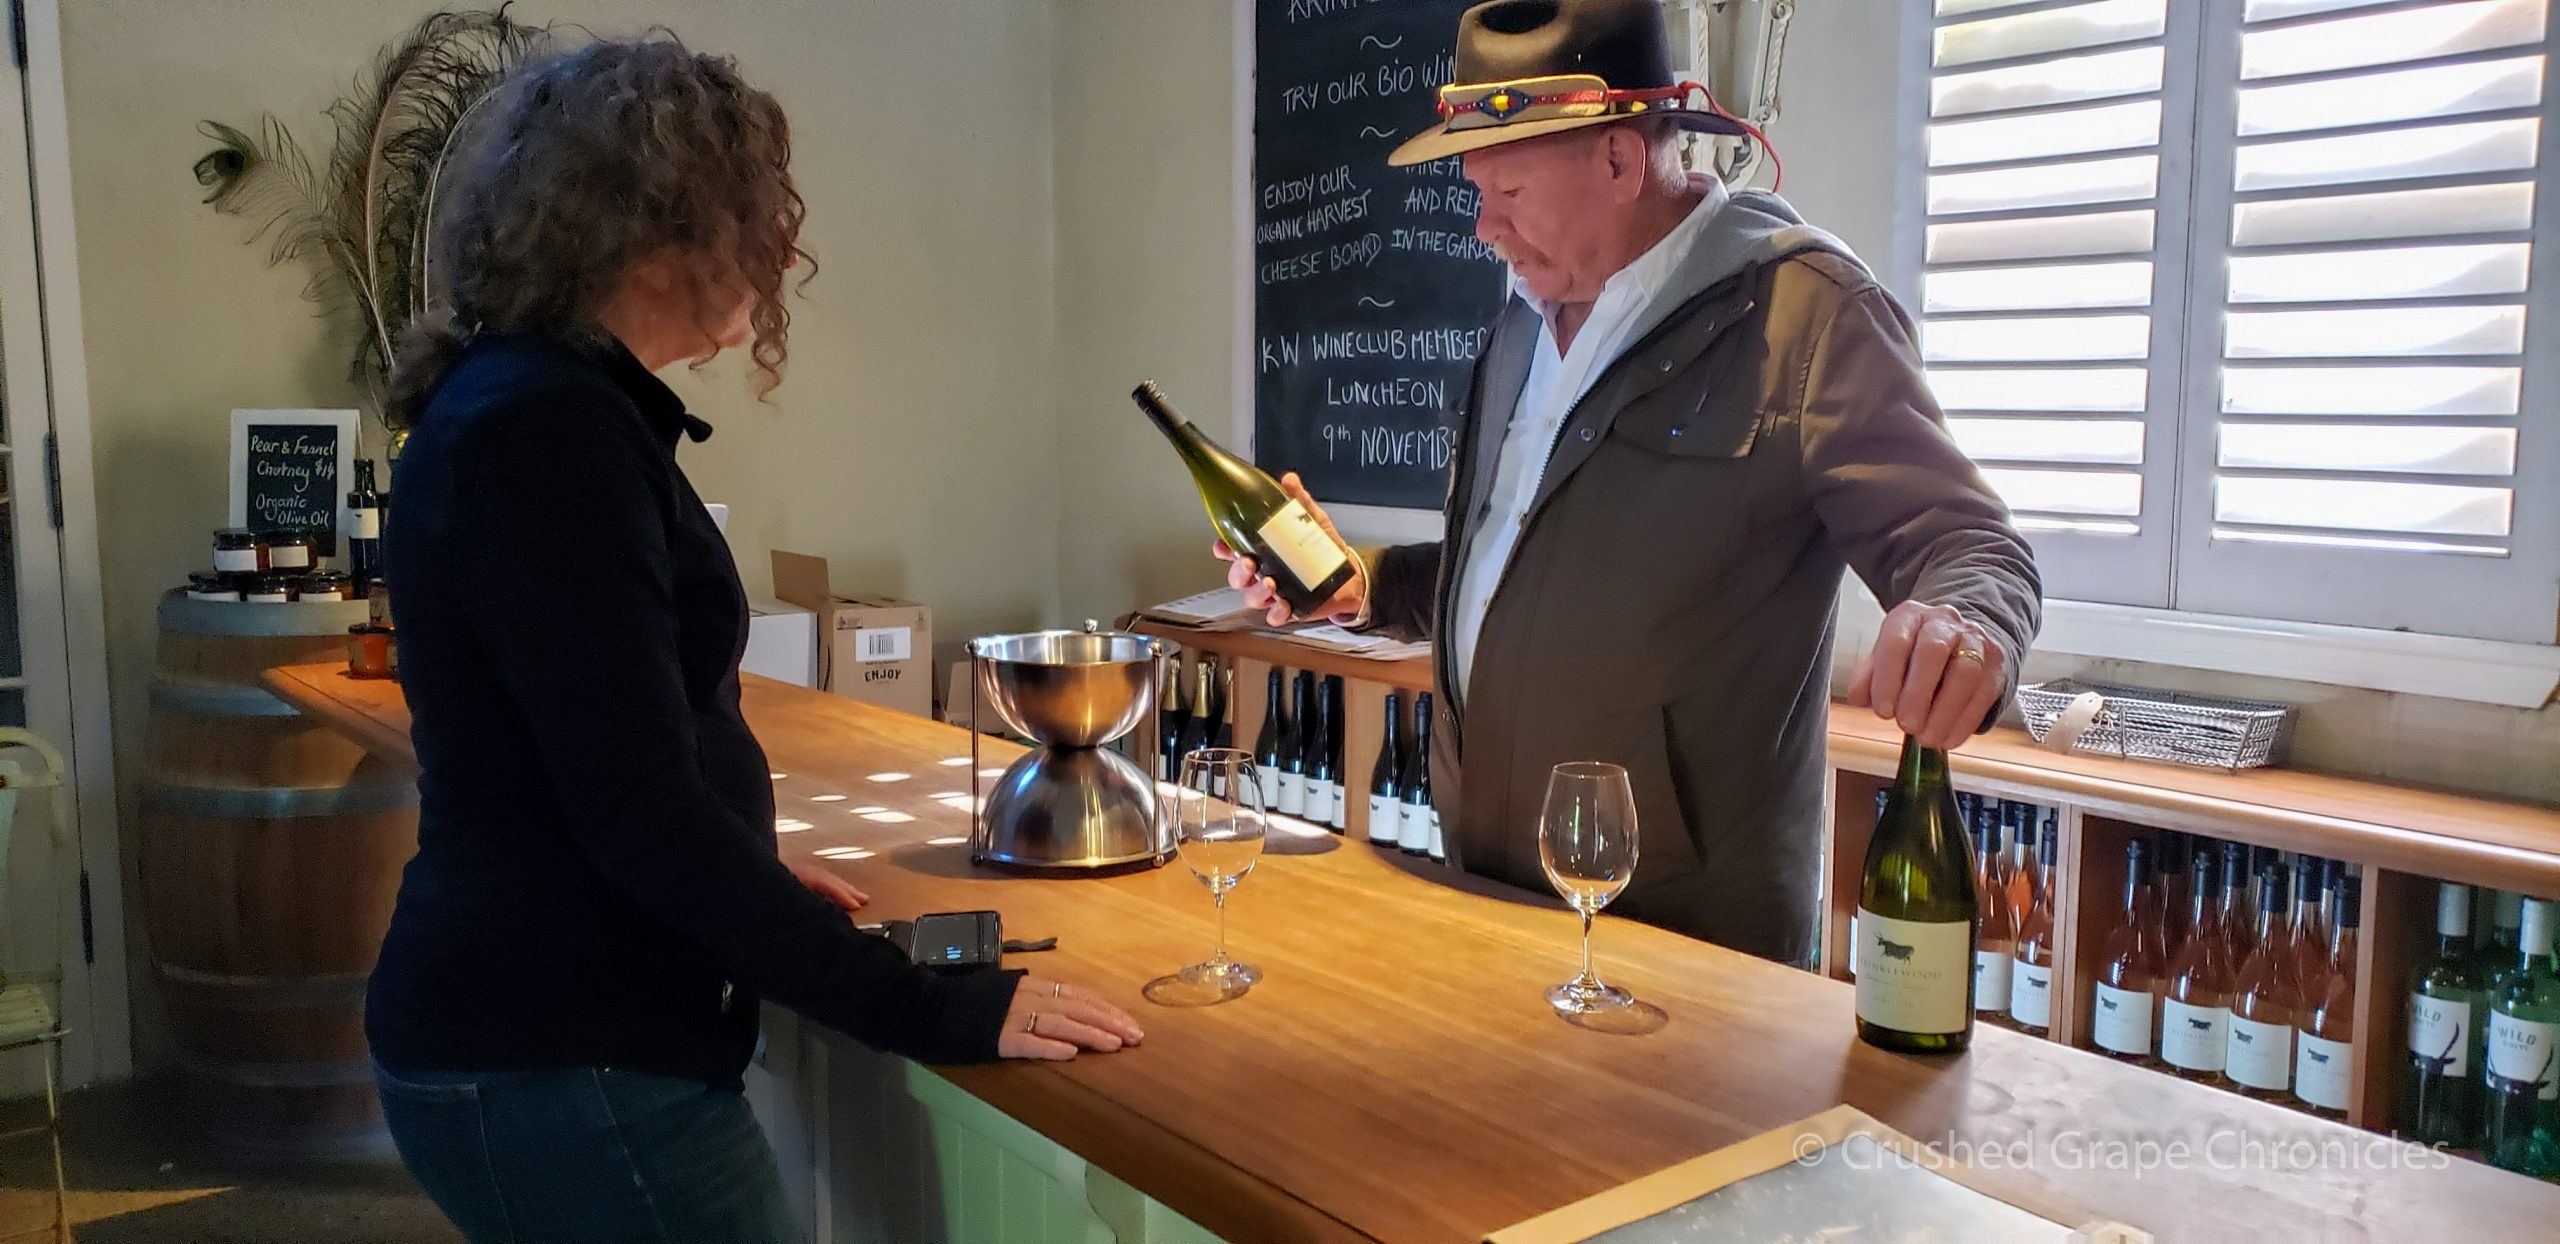 Krinklewood Tasting Room in Hunter Valley Australia with Rod Windrim